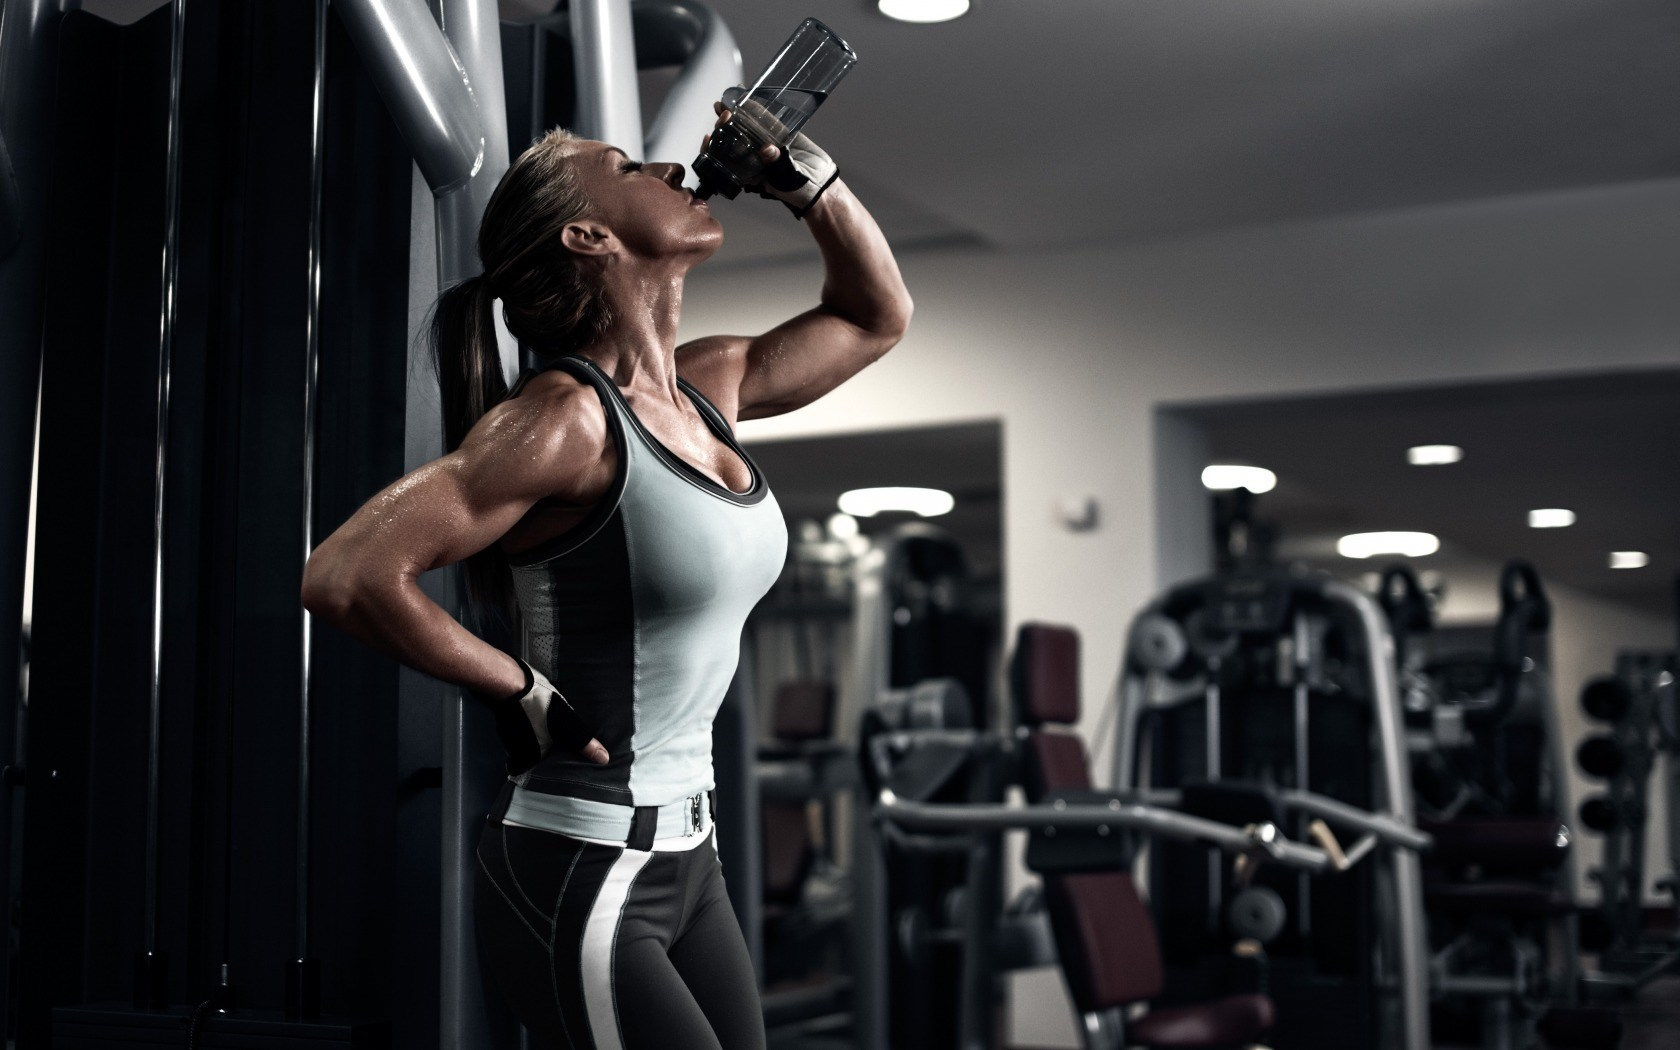 Fitnessstudio wallpaper  Fitness Girl Computer Wallpaper HD 61771 1680x1050 px ...